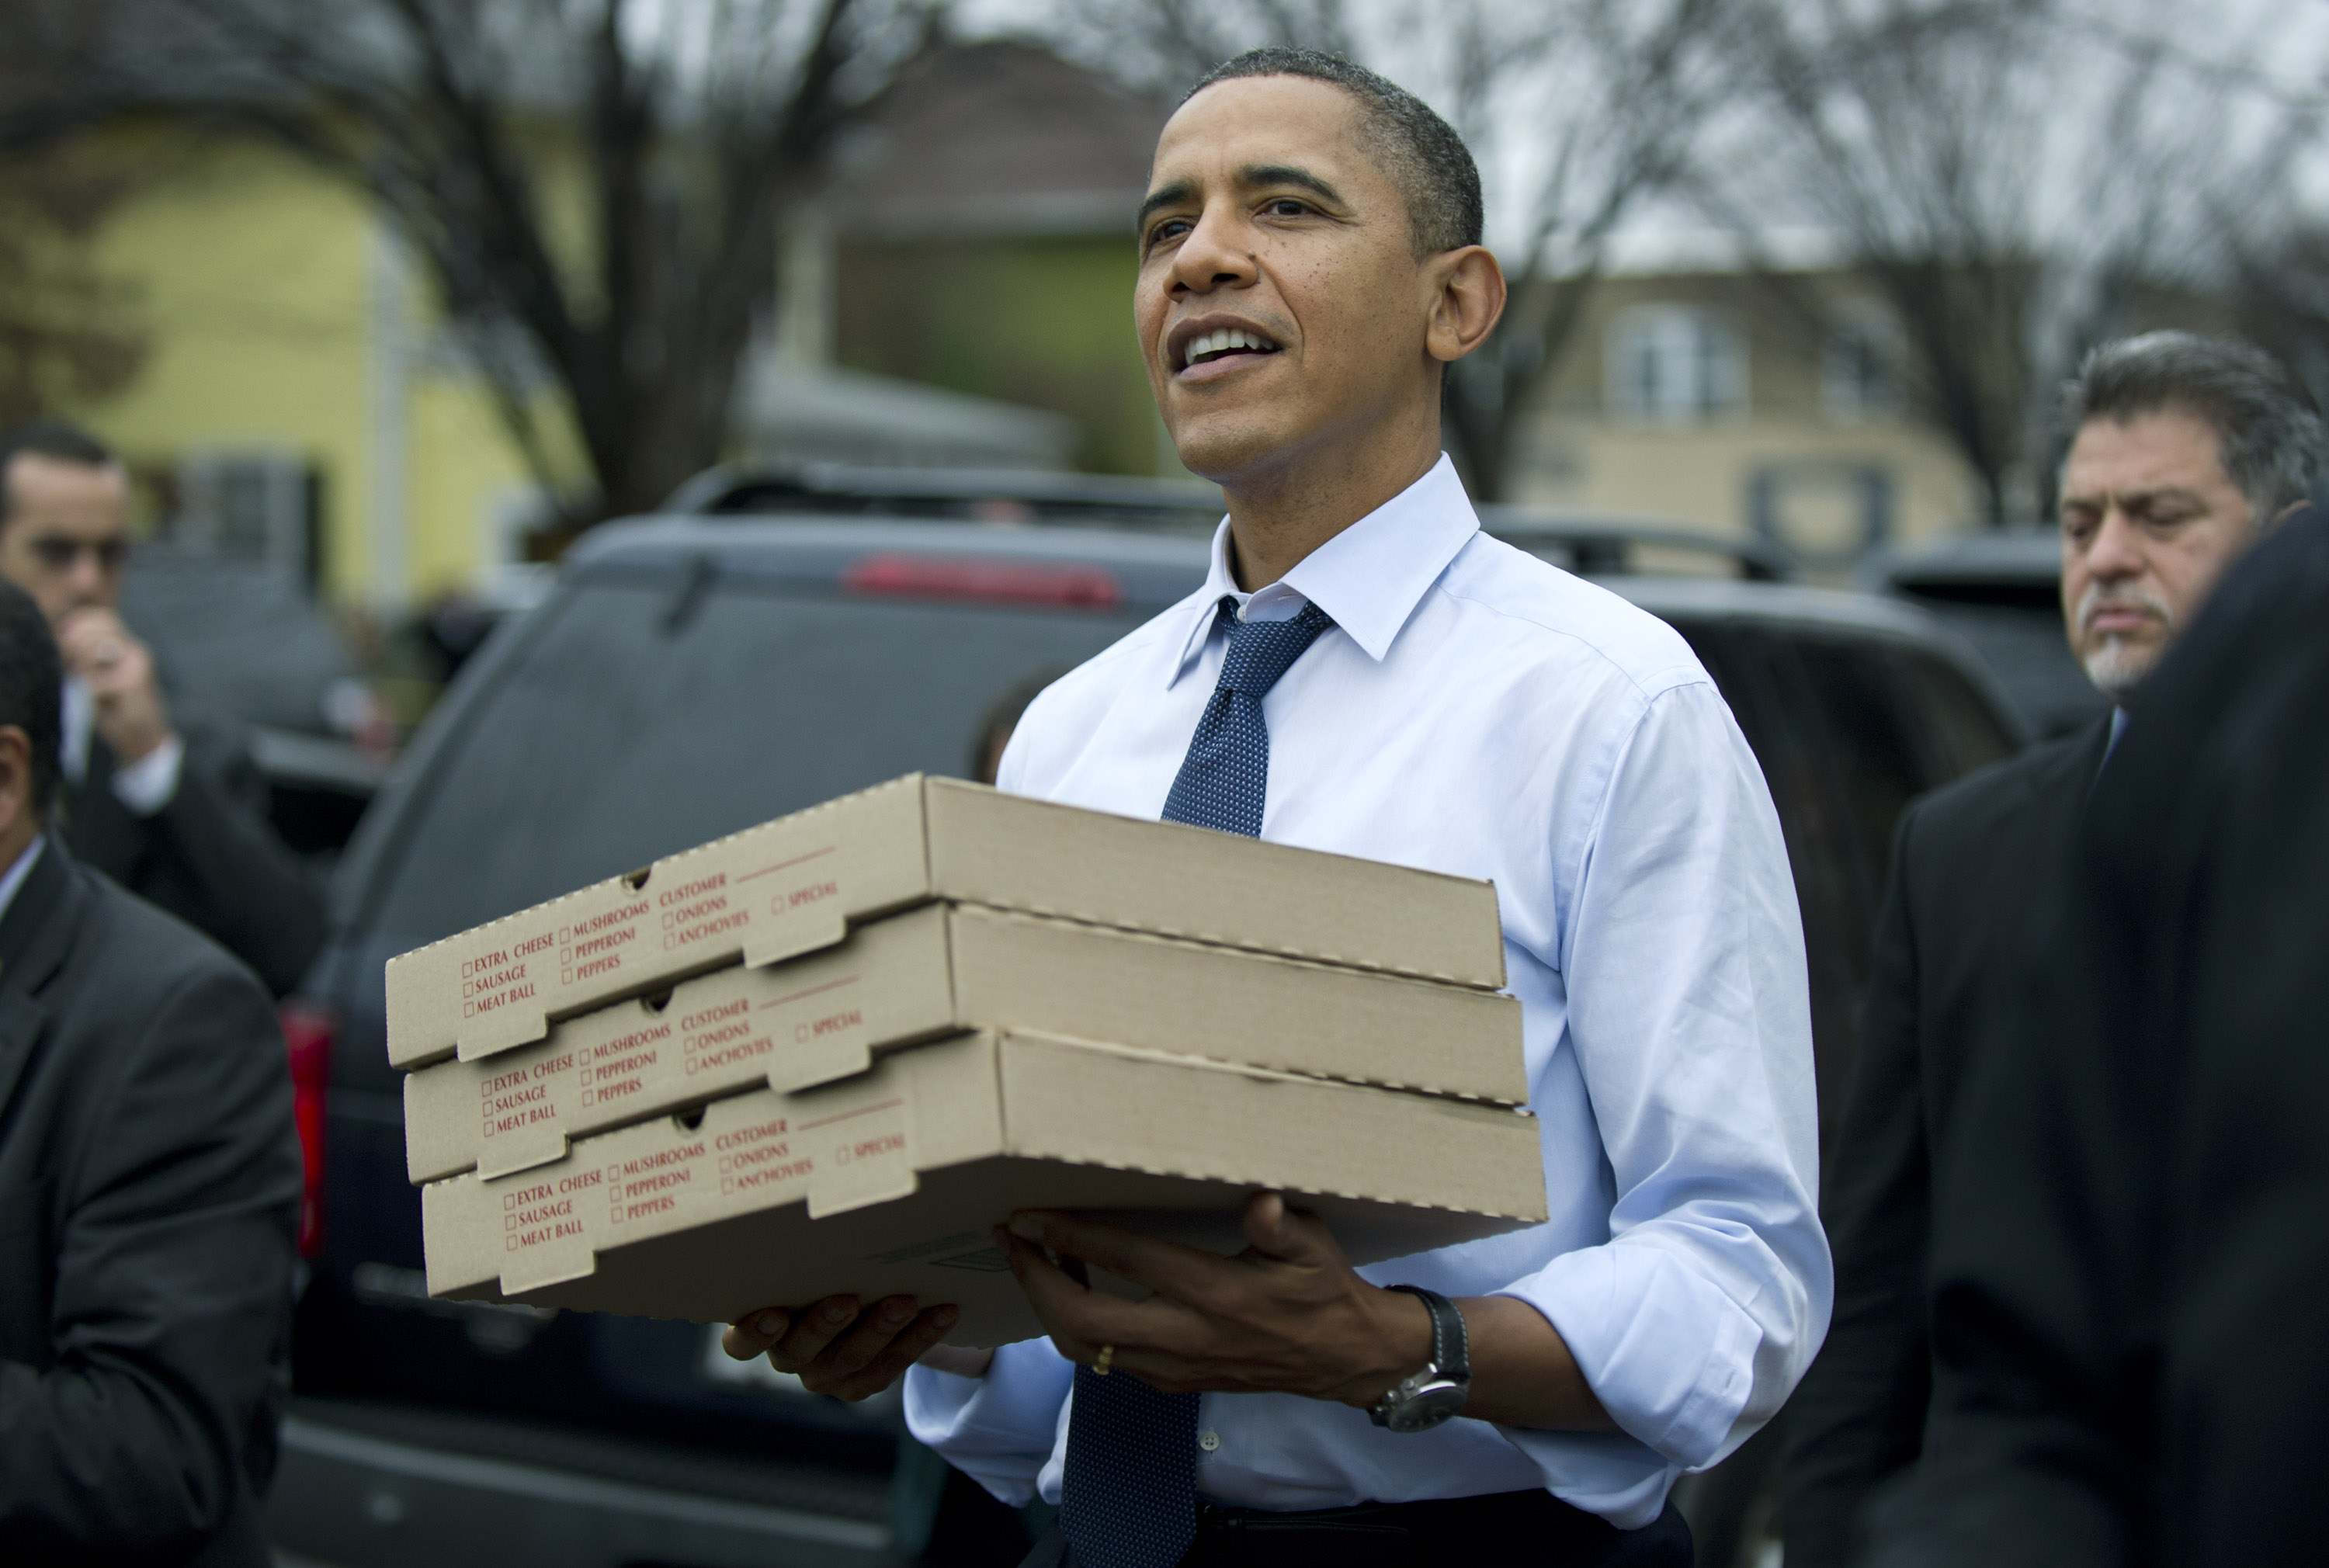 President Obama, who apparently enjoys pizza on occasion, pictured with several pizza boxes in Virginia in 2011.